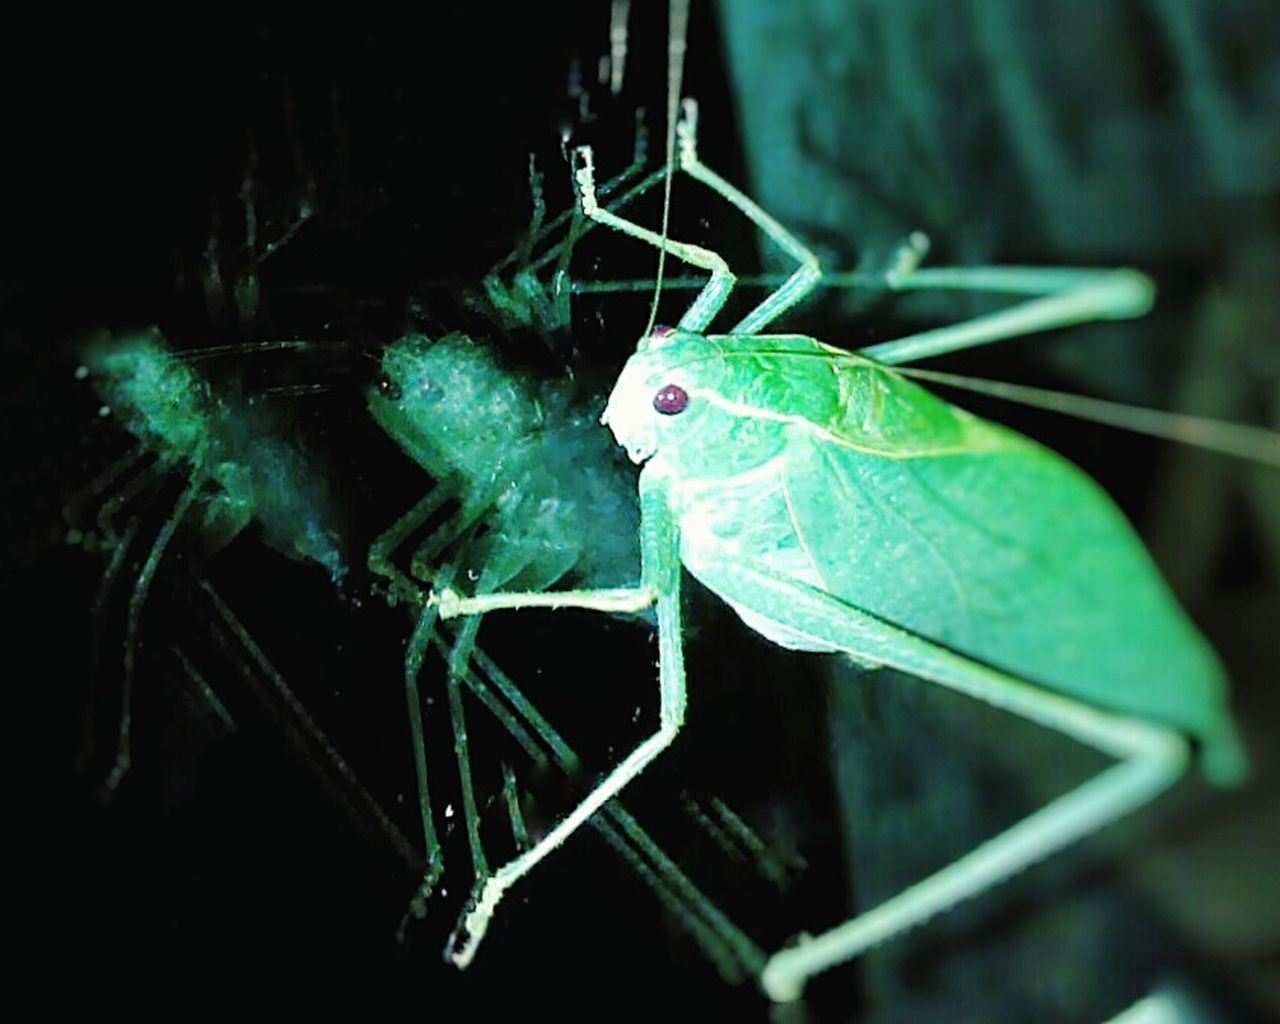 Insects  Bugs Abugslife Instabugs Reflection Reflect GREEN LIFE